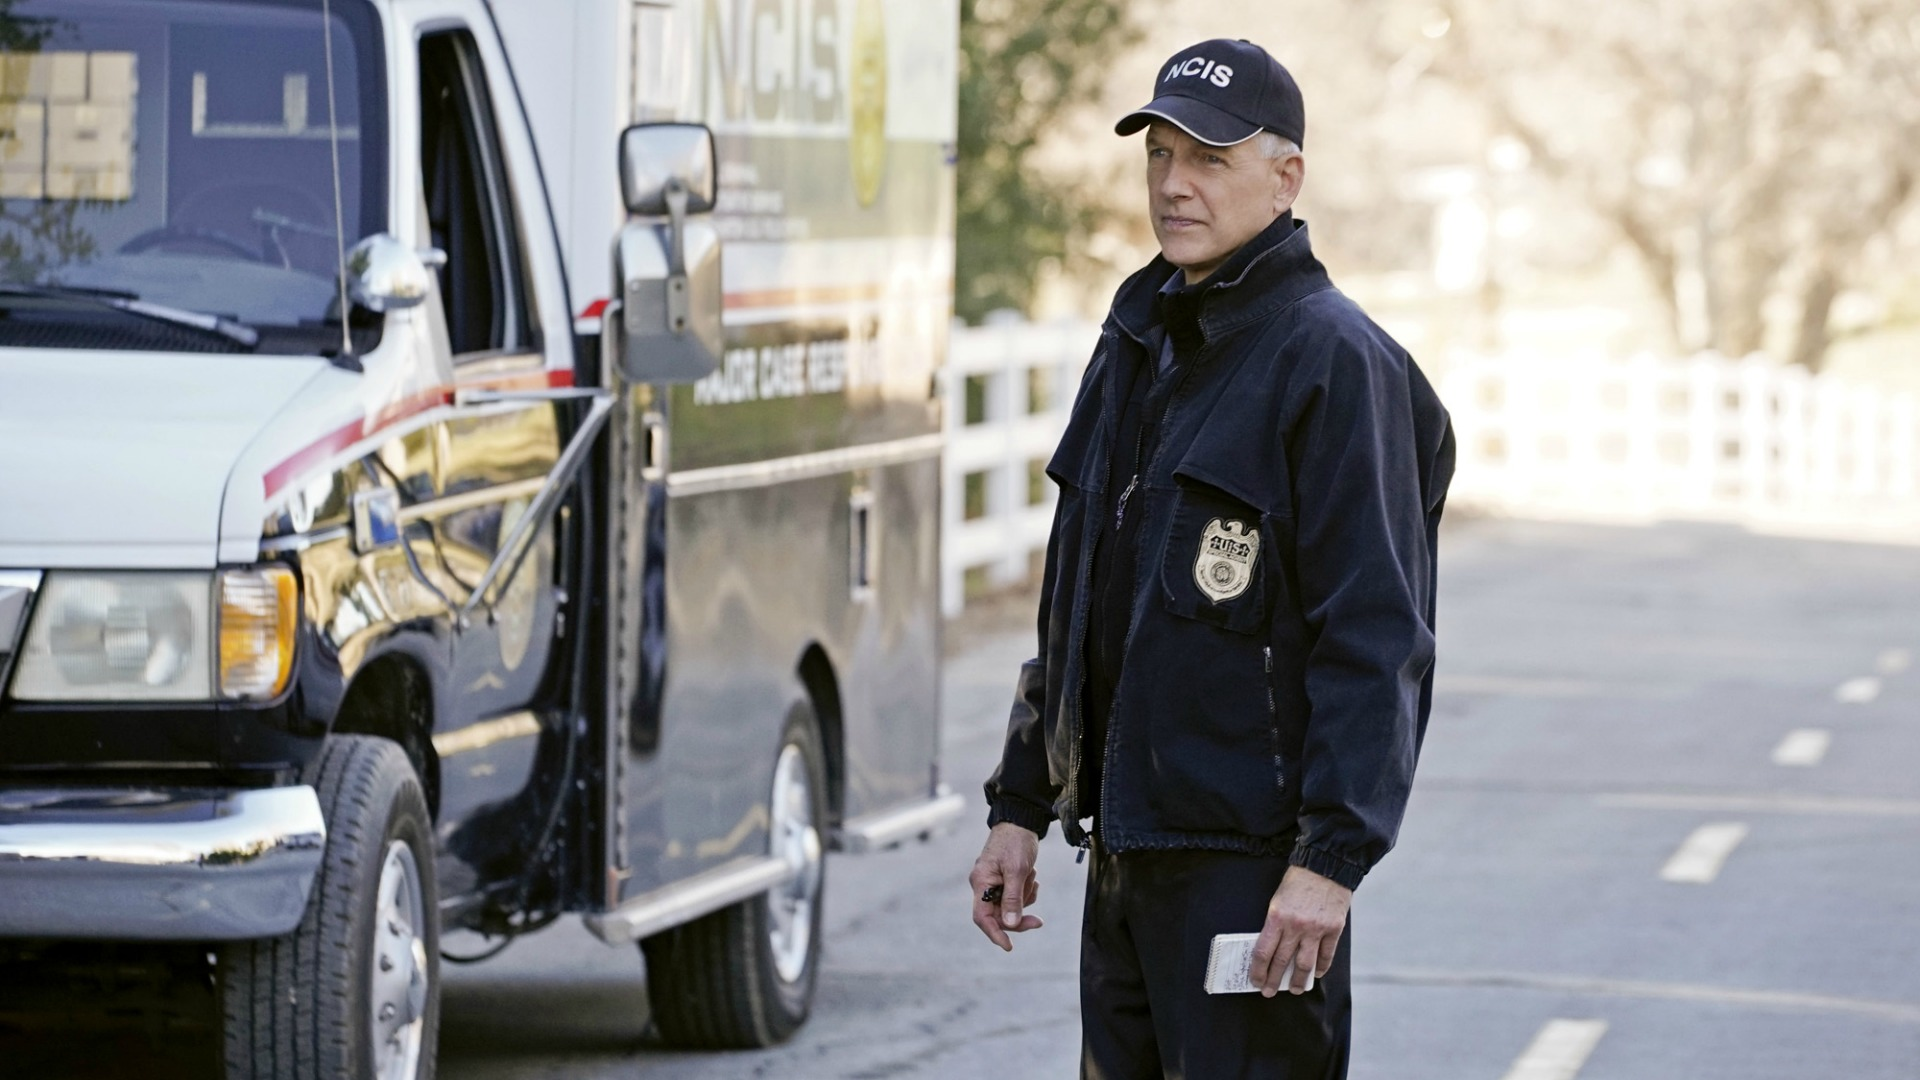 photograph about Ncis Gibbs Rules Printable List known as Gibbs Guidelines: The Detailed Record Towards NCIS - NCIS Photographs